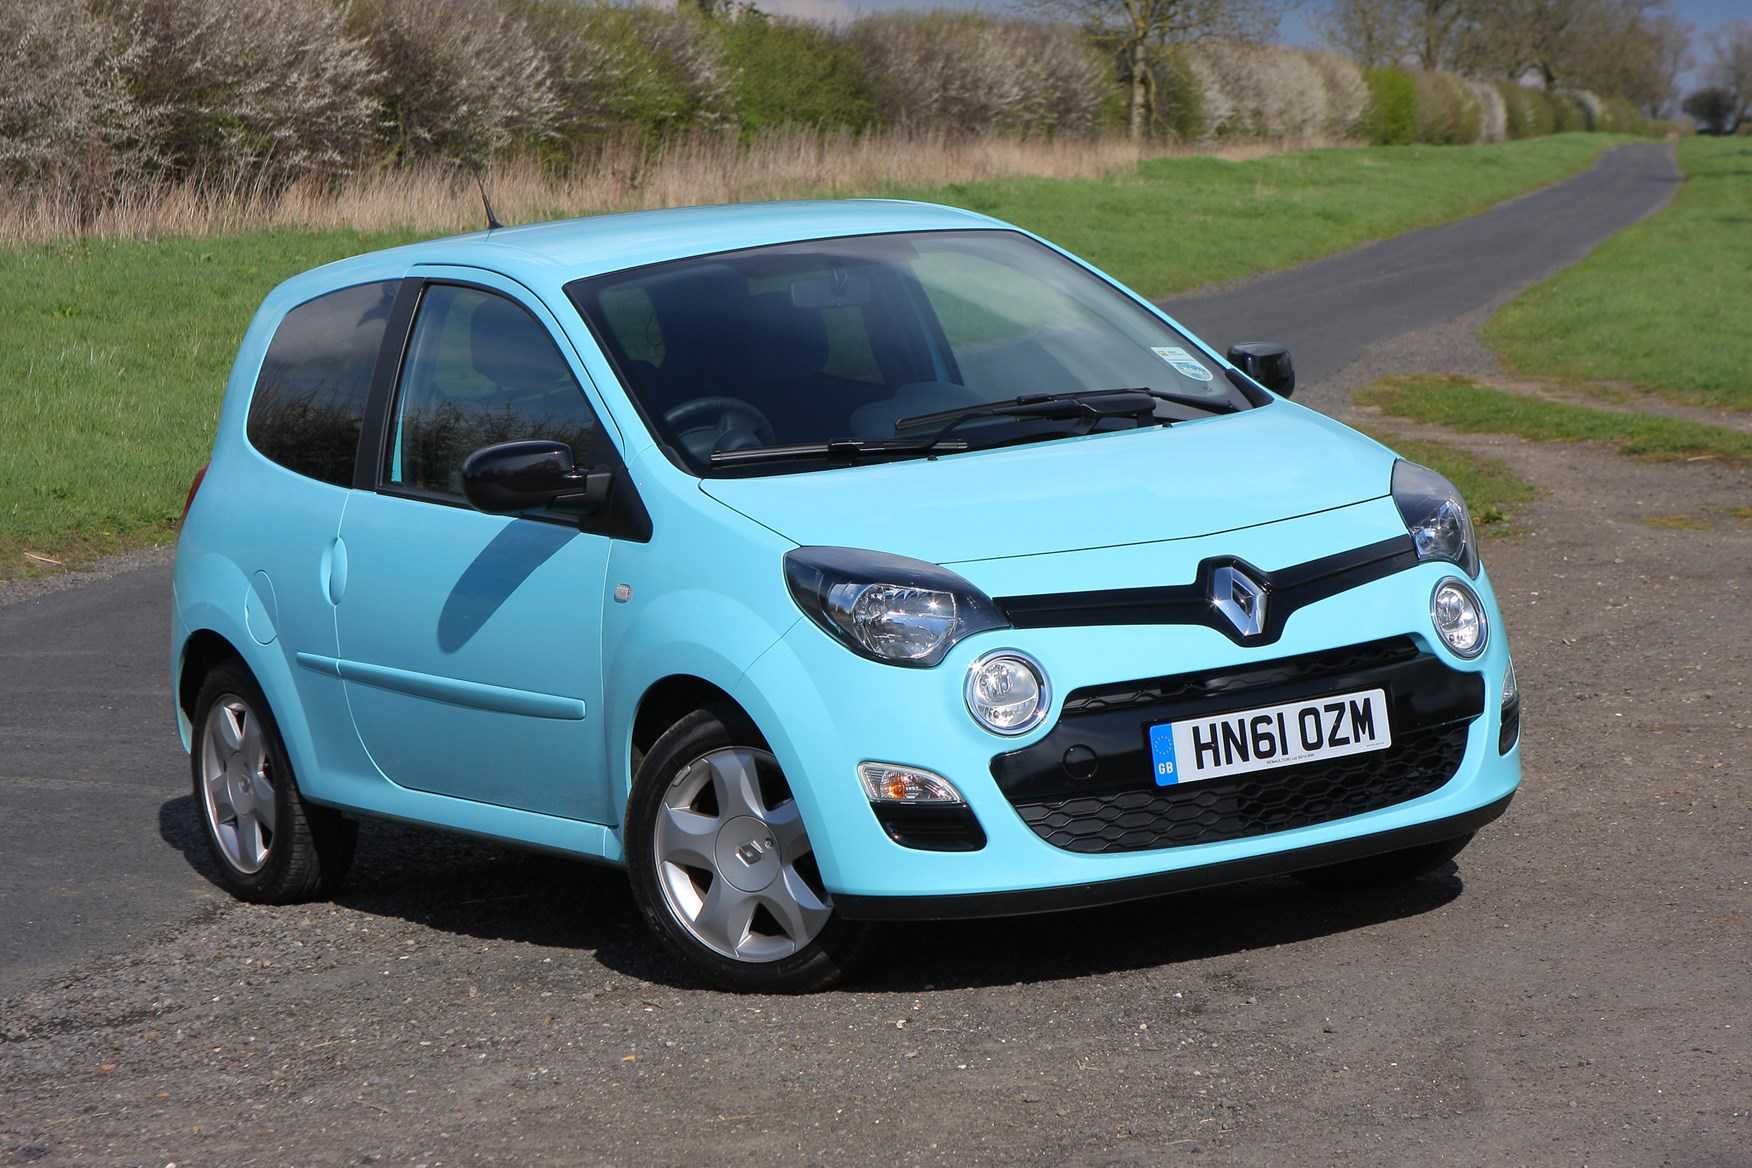 renault twingo hatchback review 2007 2014 parkers. Black Bedroom Furniture Sets. Home Design Ideas